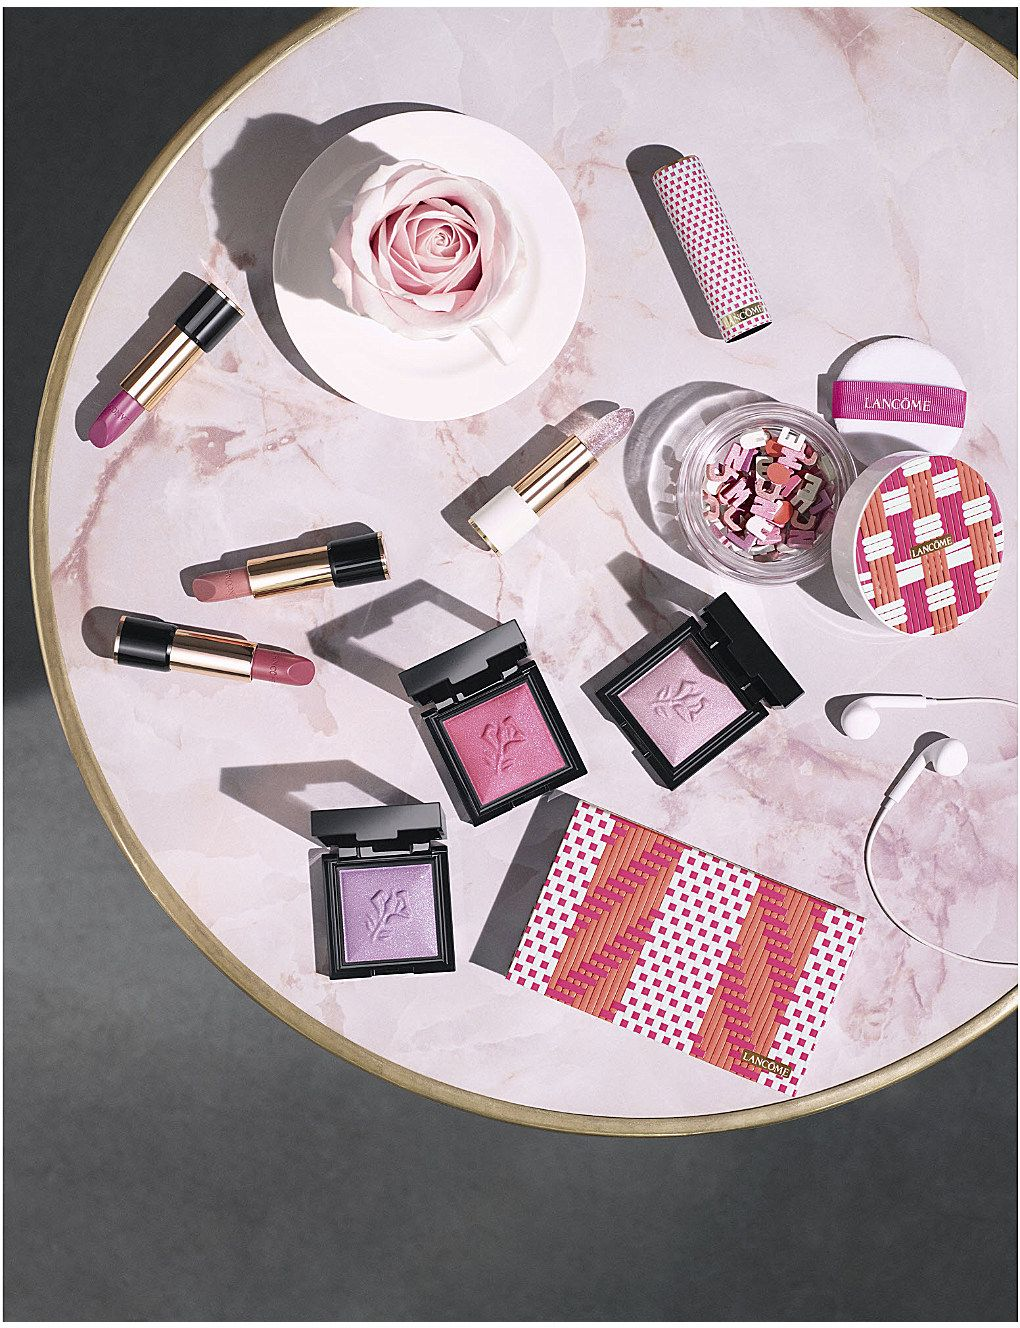 Lancome Spring 2019 Makeup Collection With Images Lancome